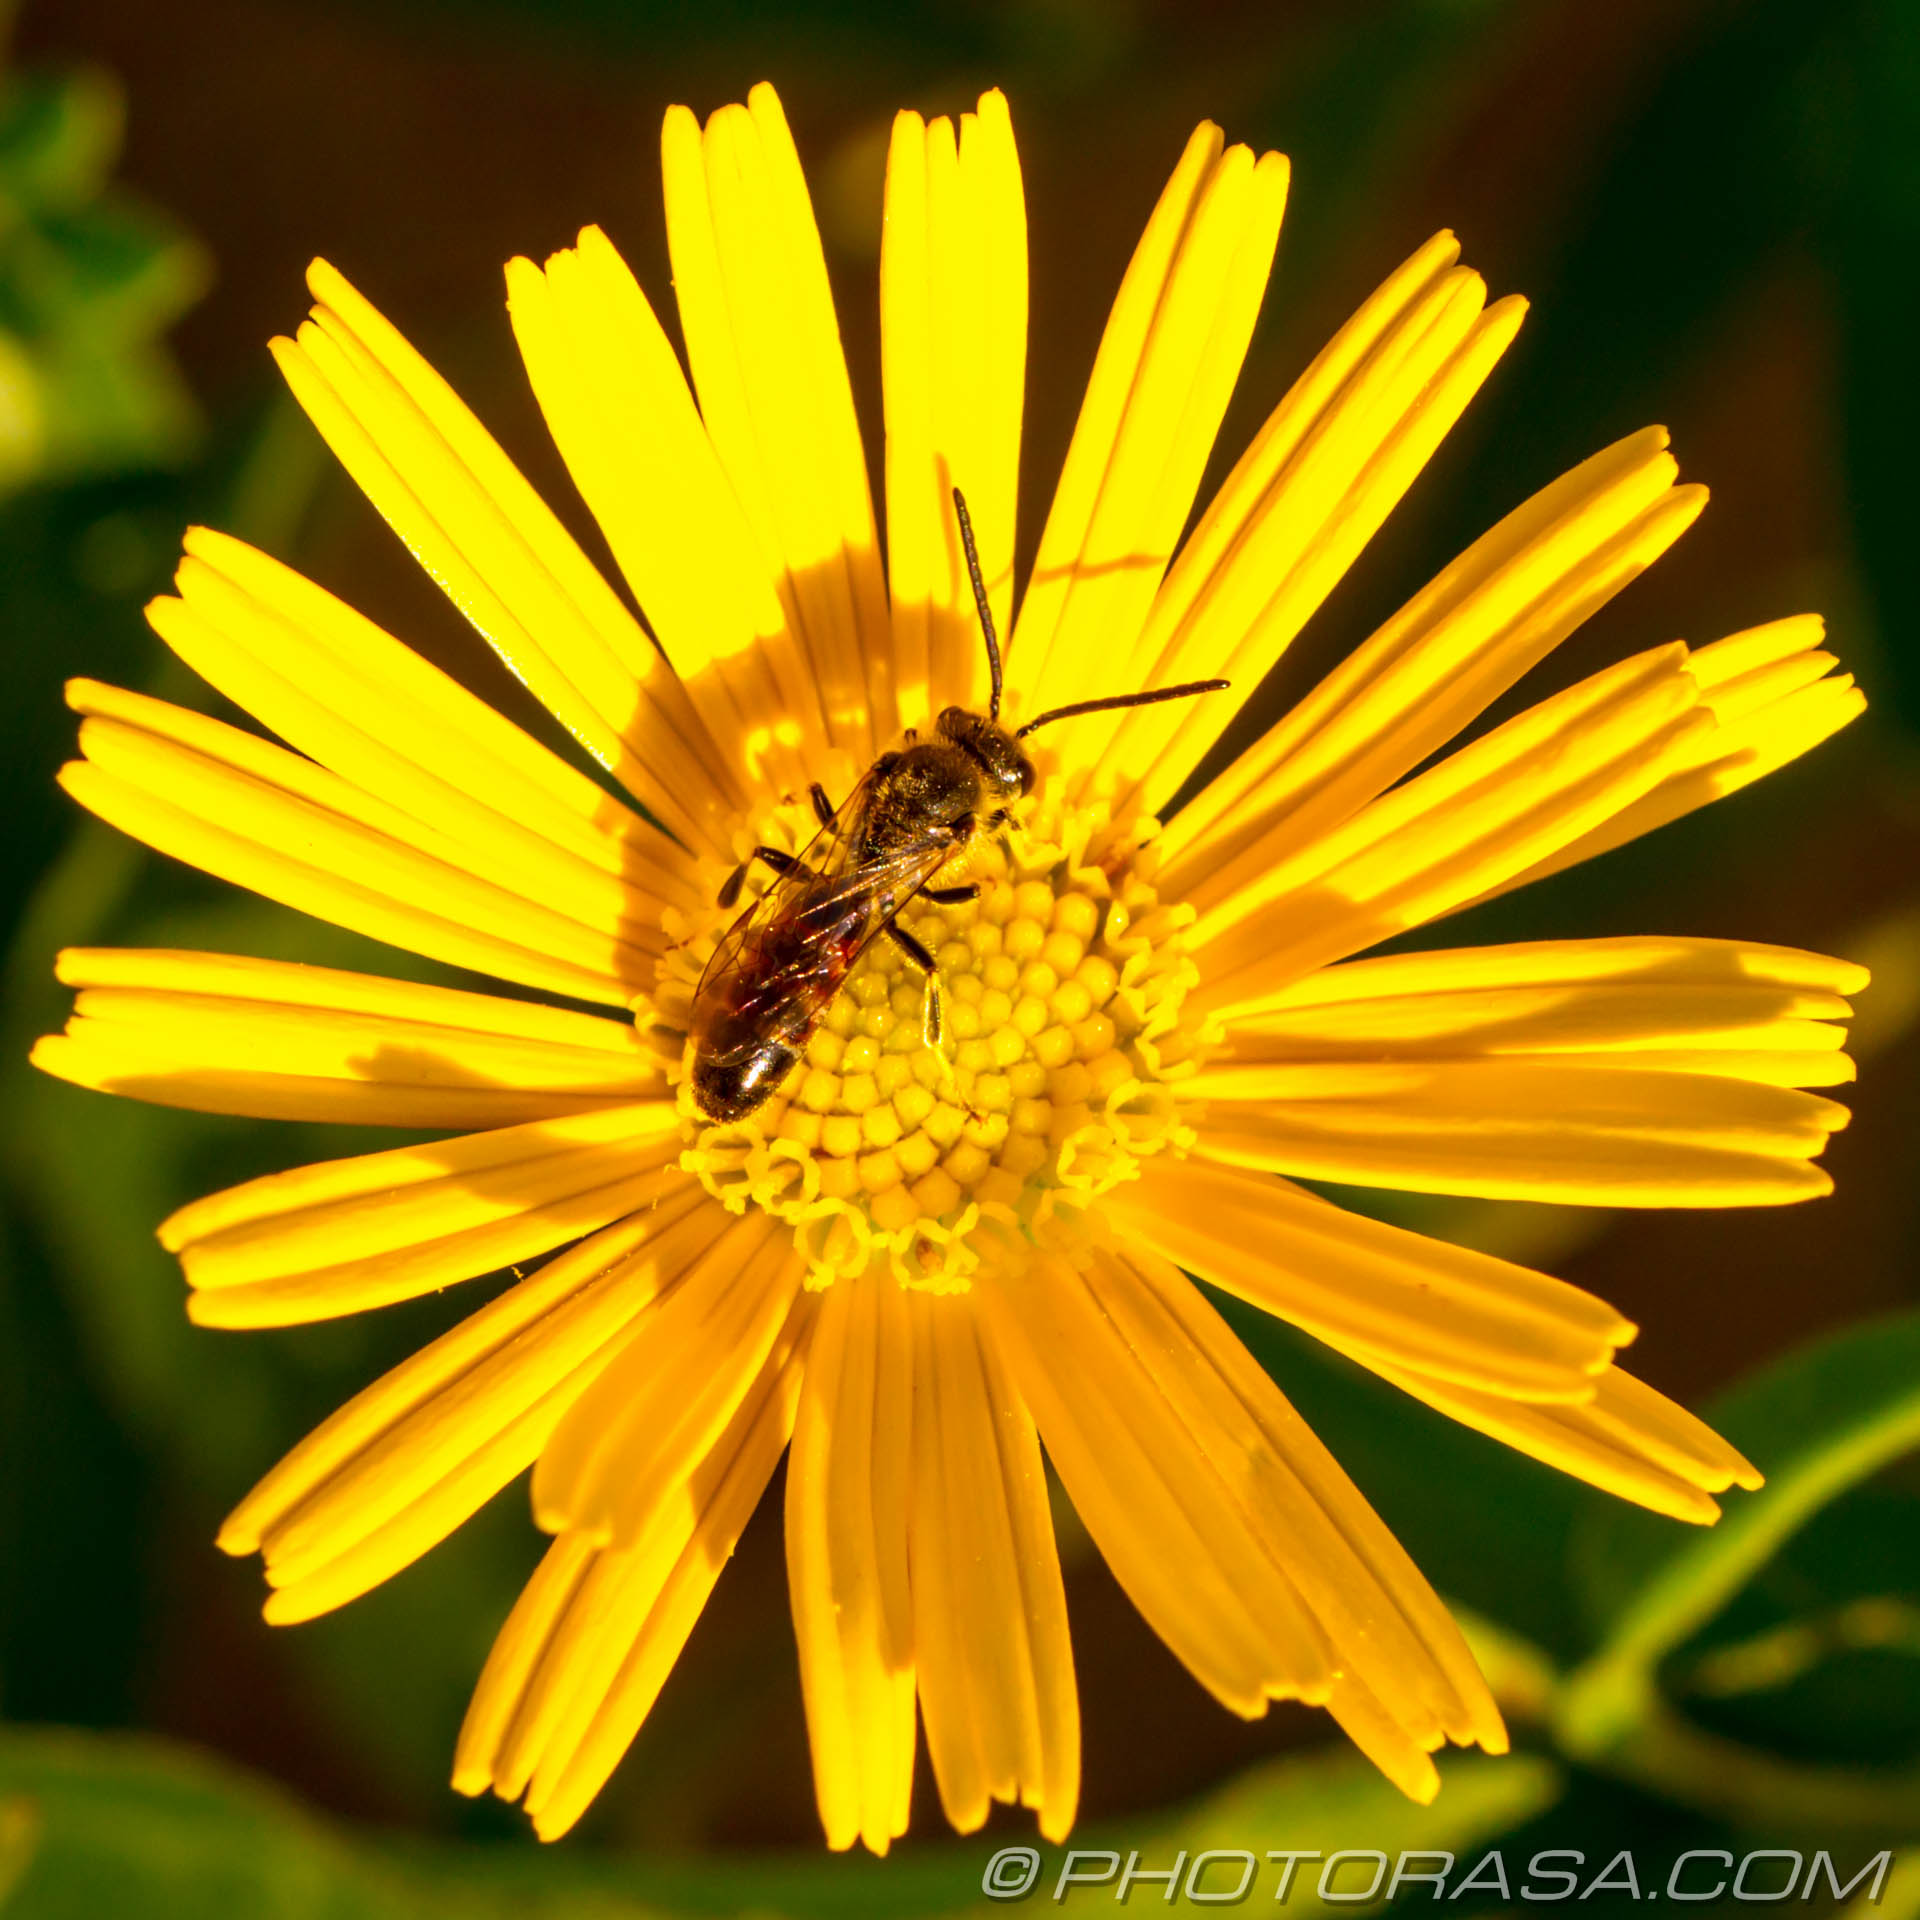 http://photorasa.com/flower-fly/sunny-flower-and-hoverfly/